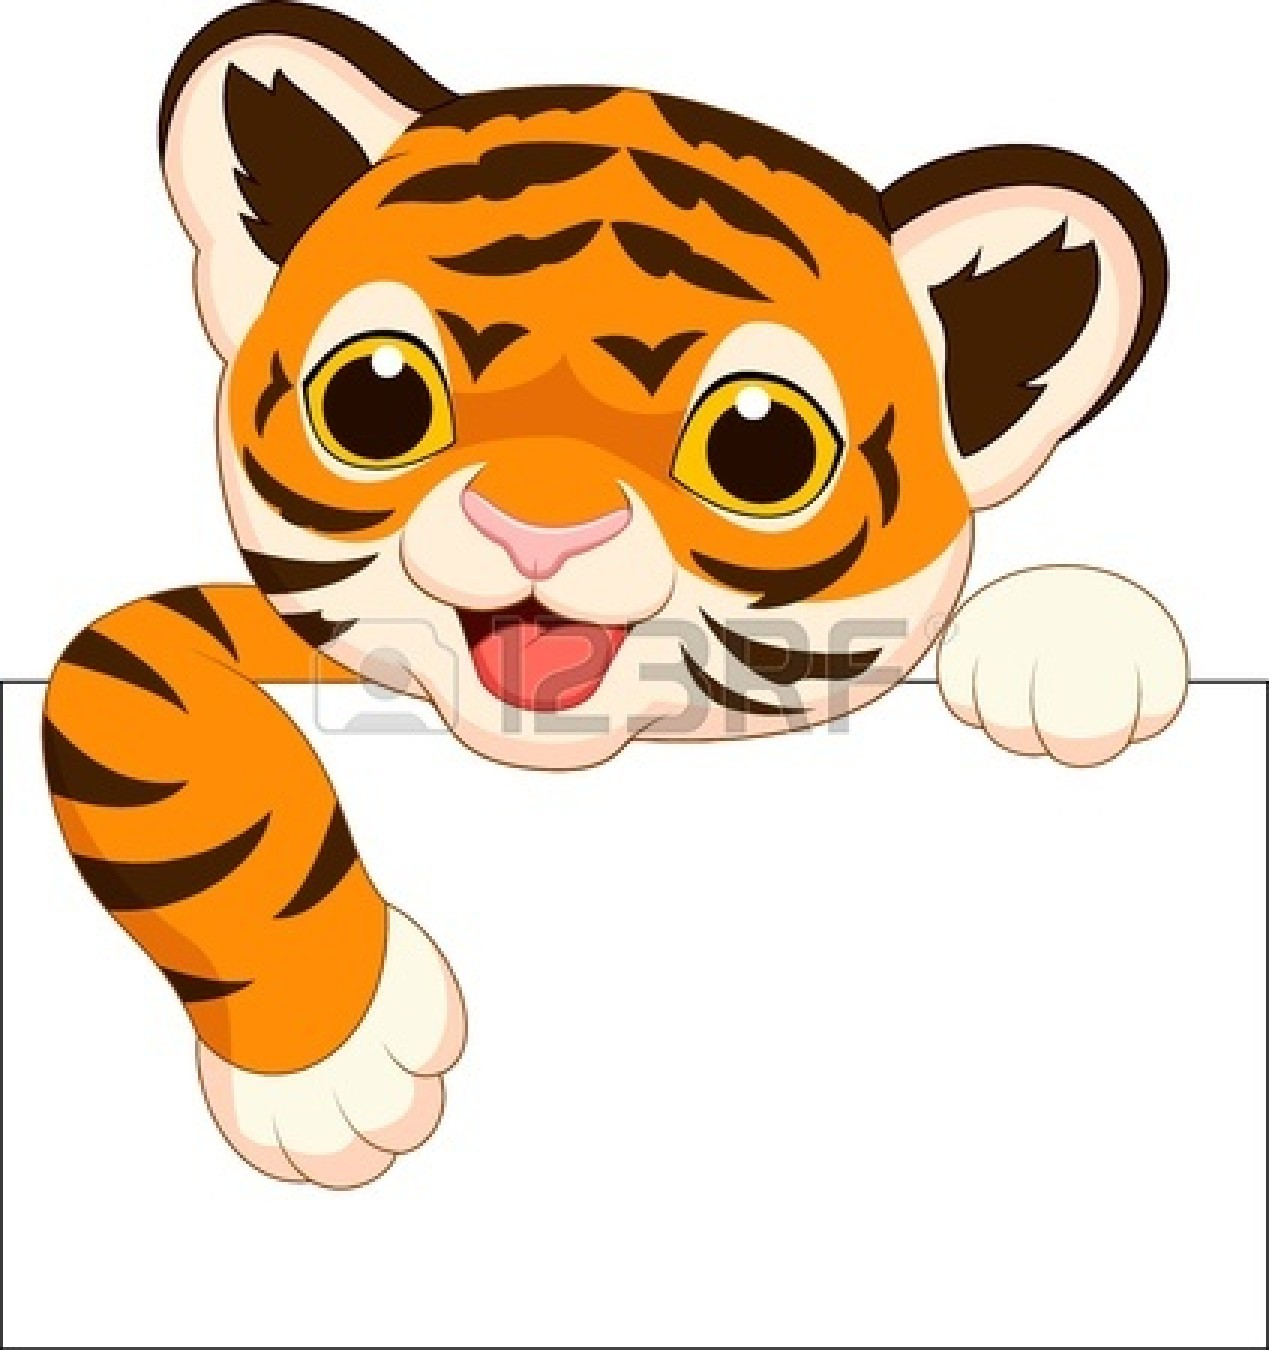 baby tiger clipart at getdrawings com free for personal use baby rh getdrawings com baby tiger clipart free cute baby tiger clipart